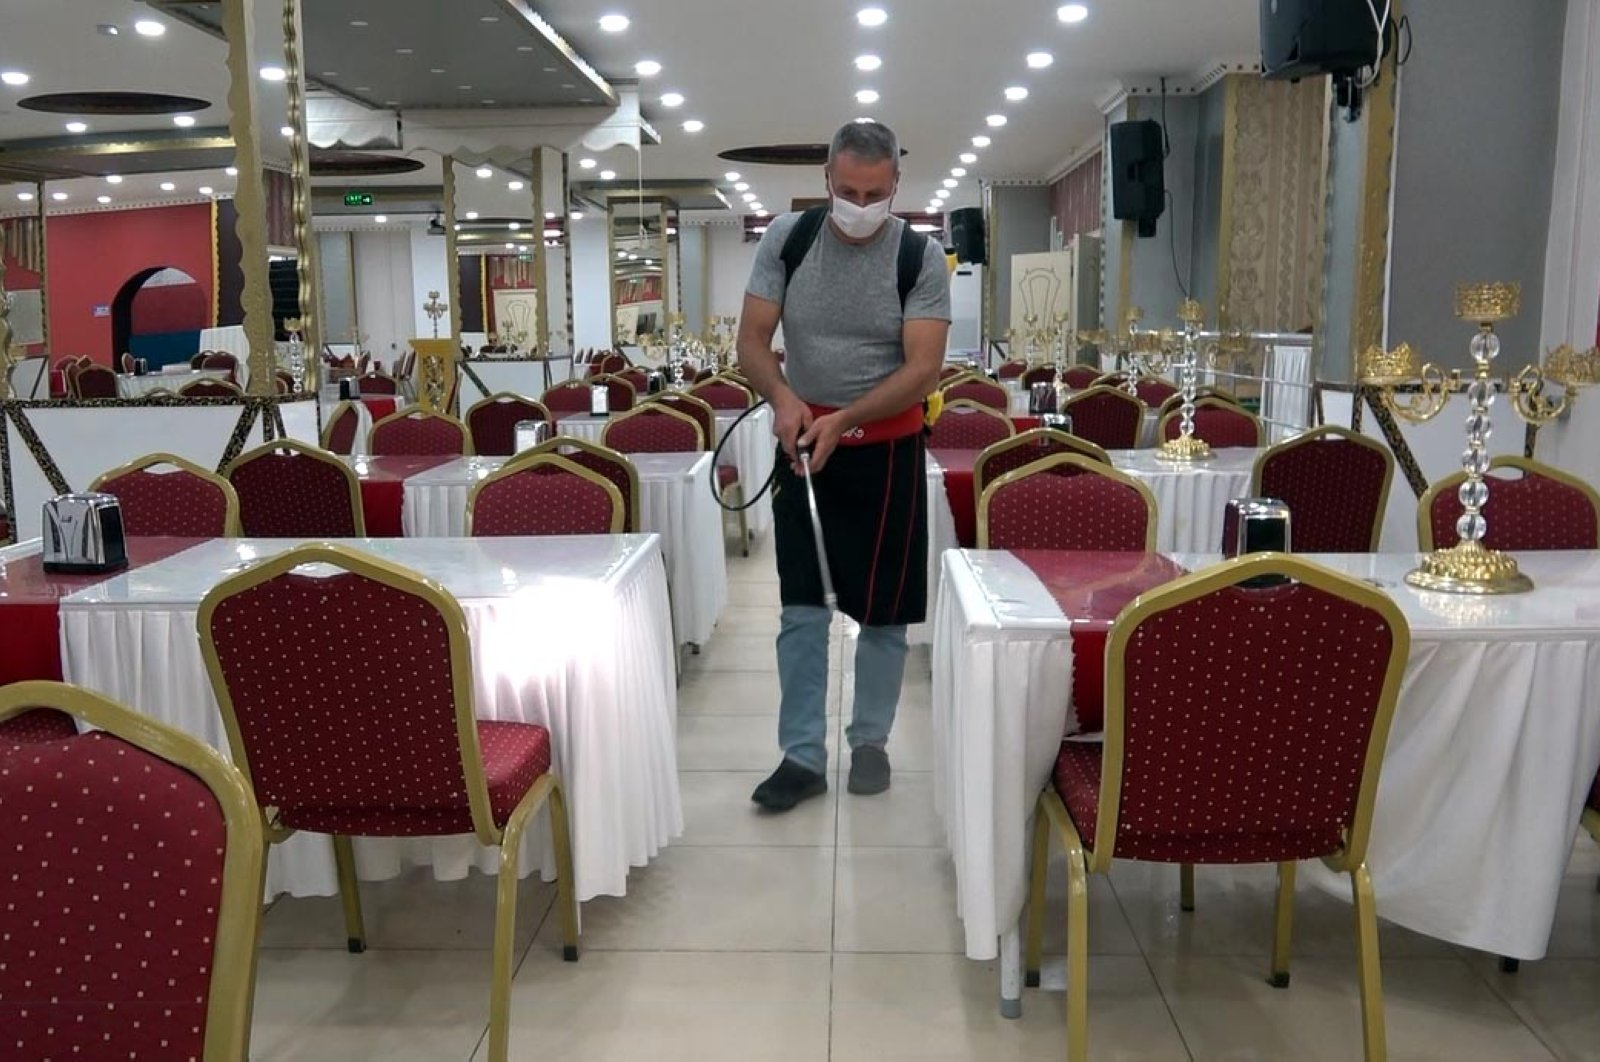 A worker disinfects a wedding hall in the Erciş district, in Van, Turkey, June 19, 2020. (DHA Photo)